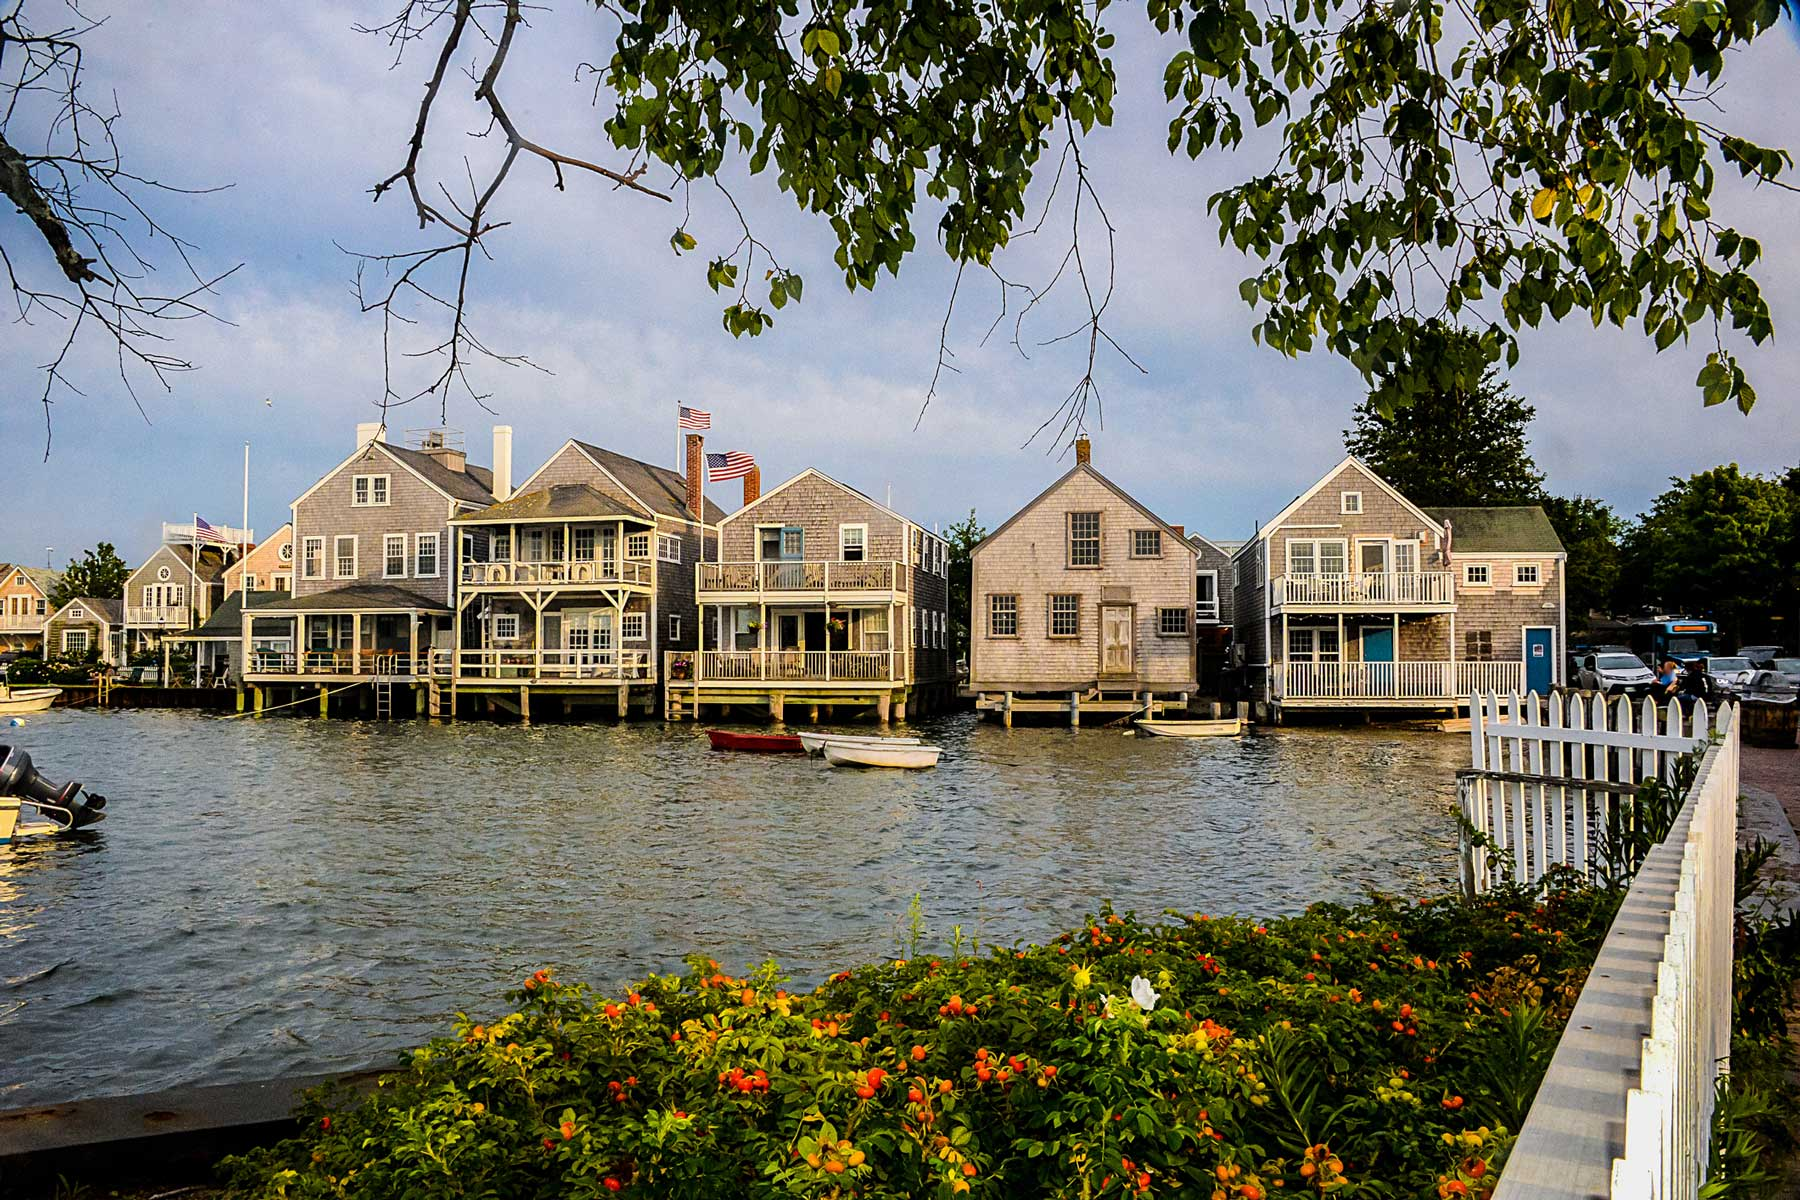 A view of homes and boats on the water of Nantucket Island